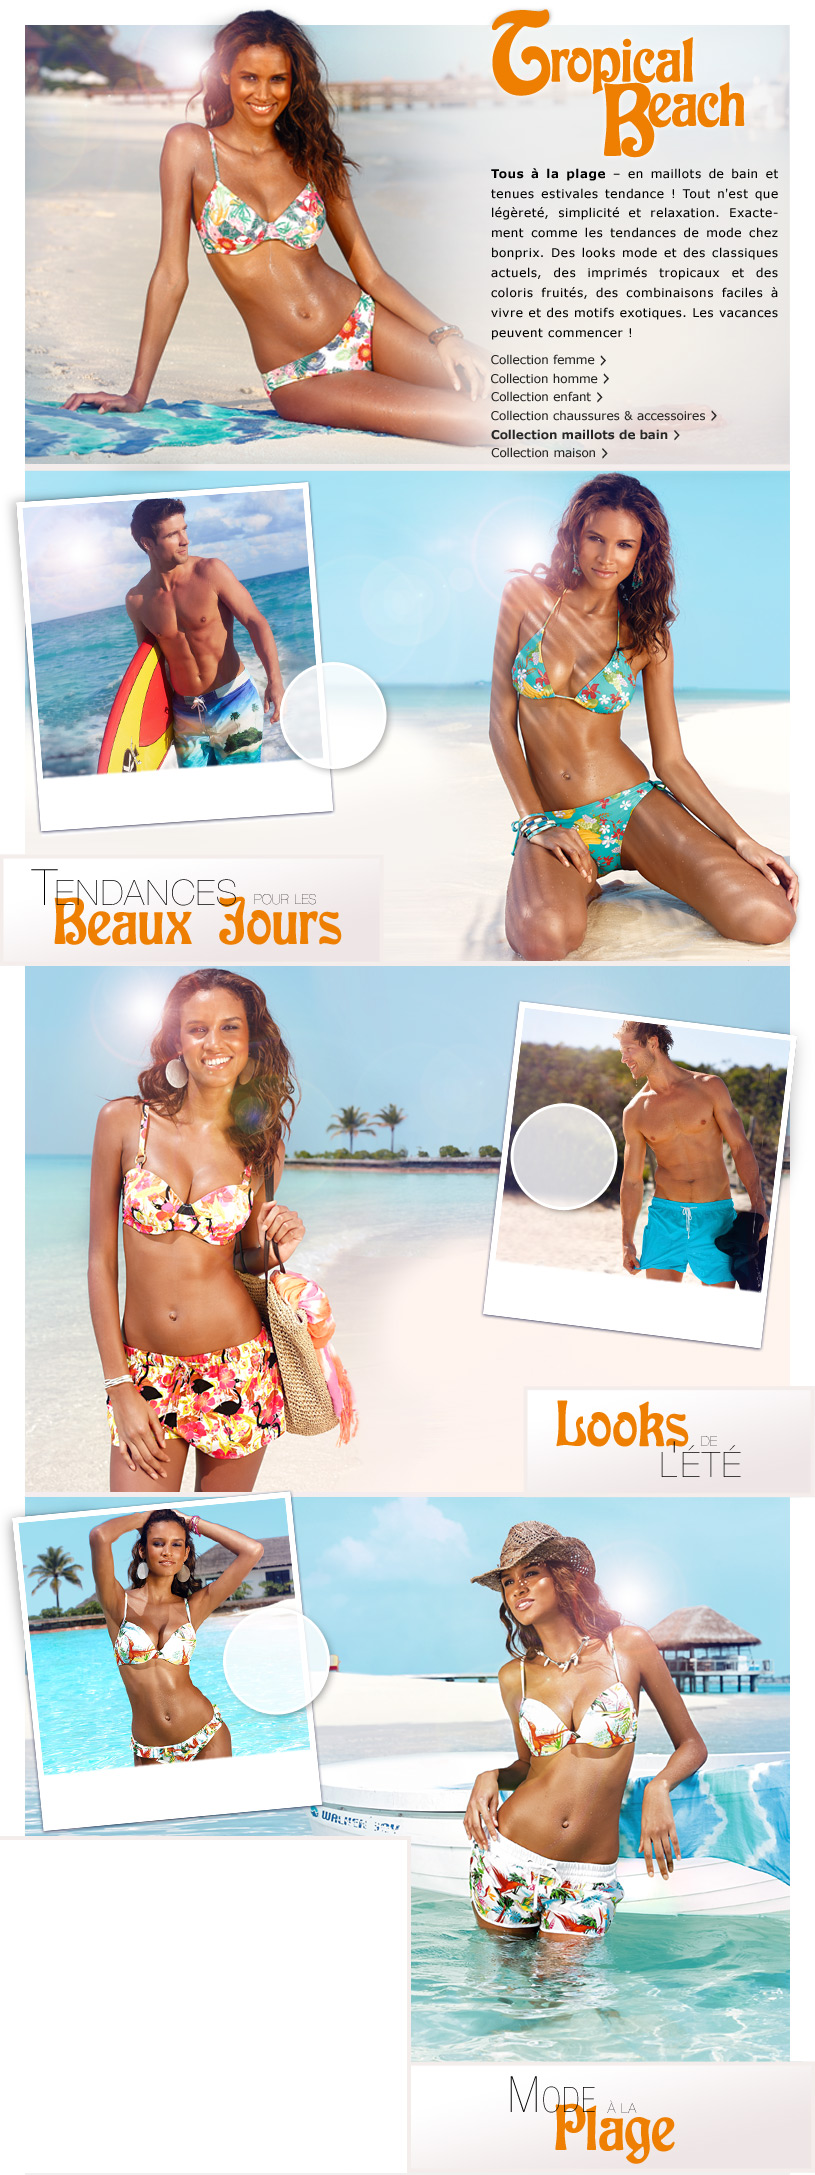 teaser/bpfr/freies_layout/FR_BADE_FREI_TropicalBeach_1713.jpg